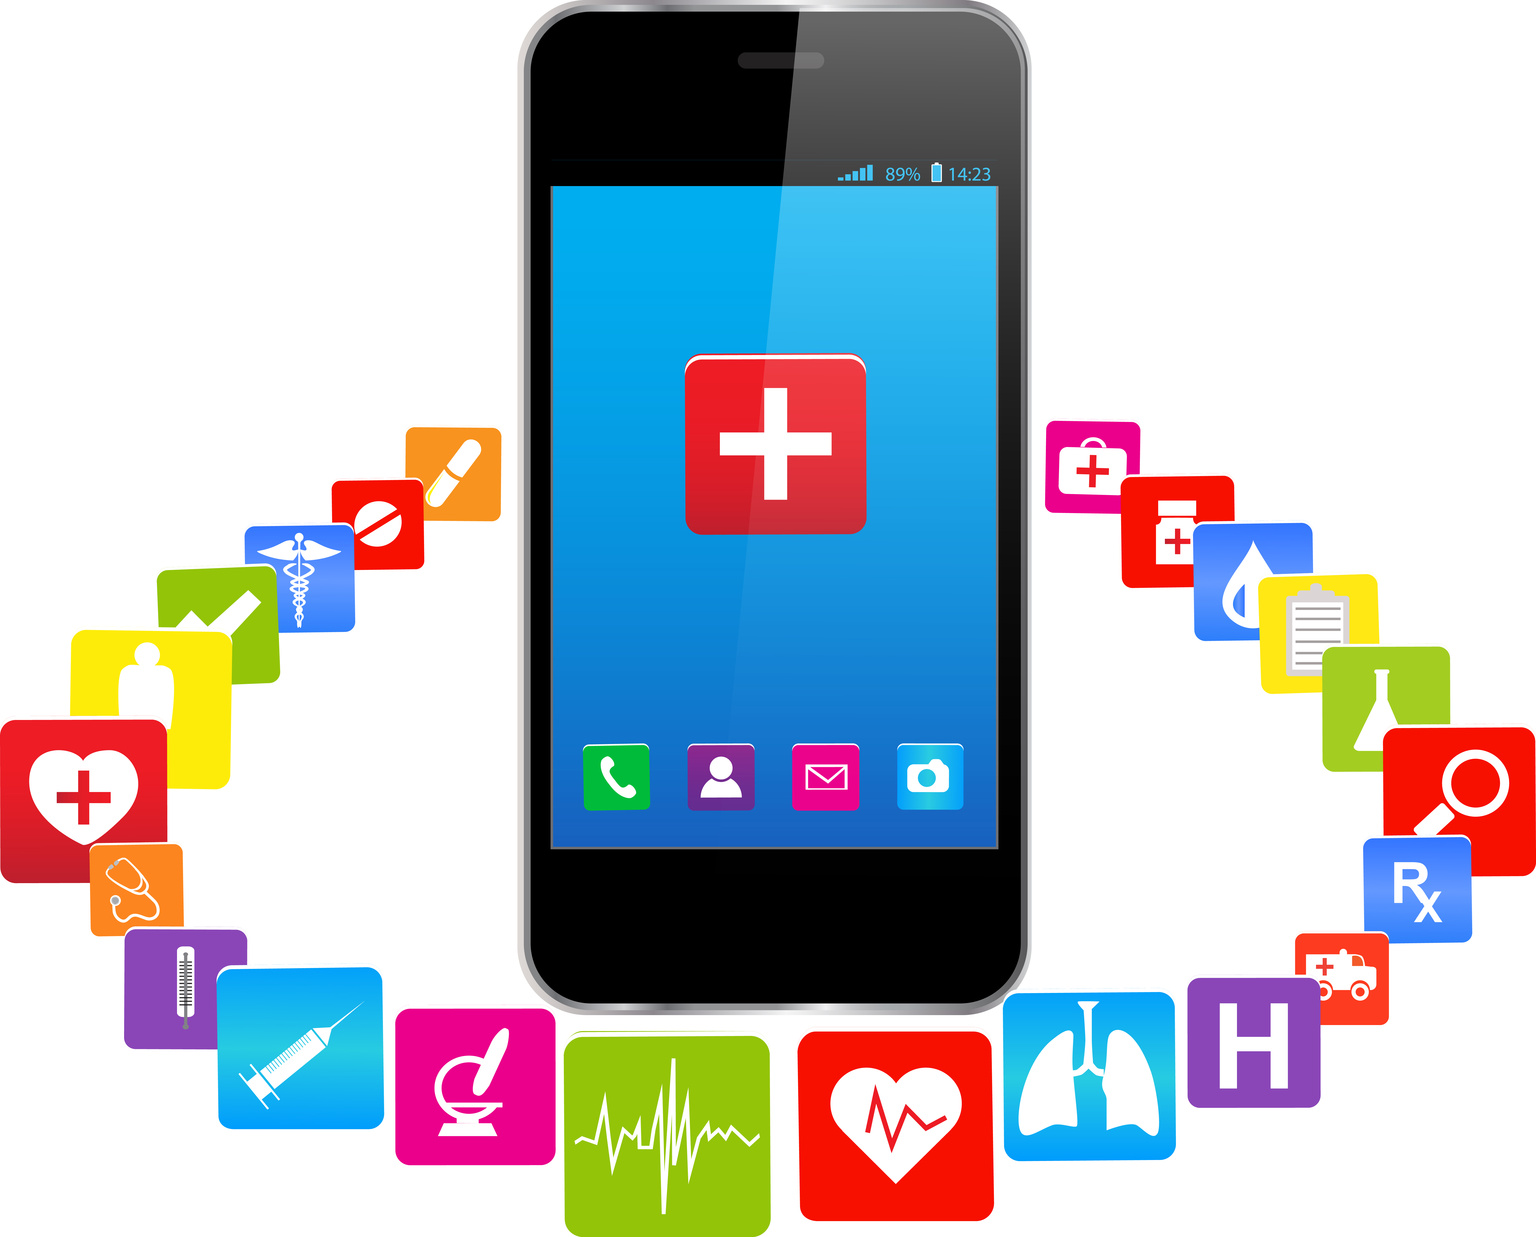 Mental-health apps have pros, cons for caregivers